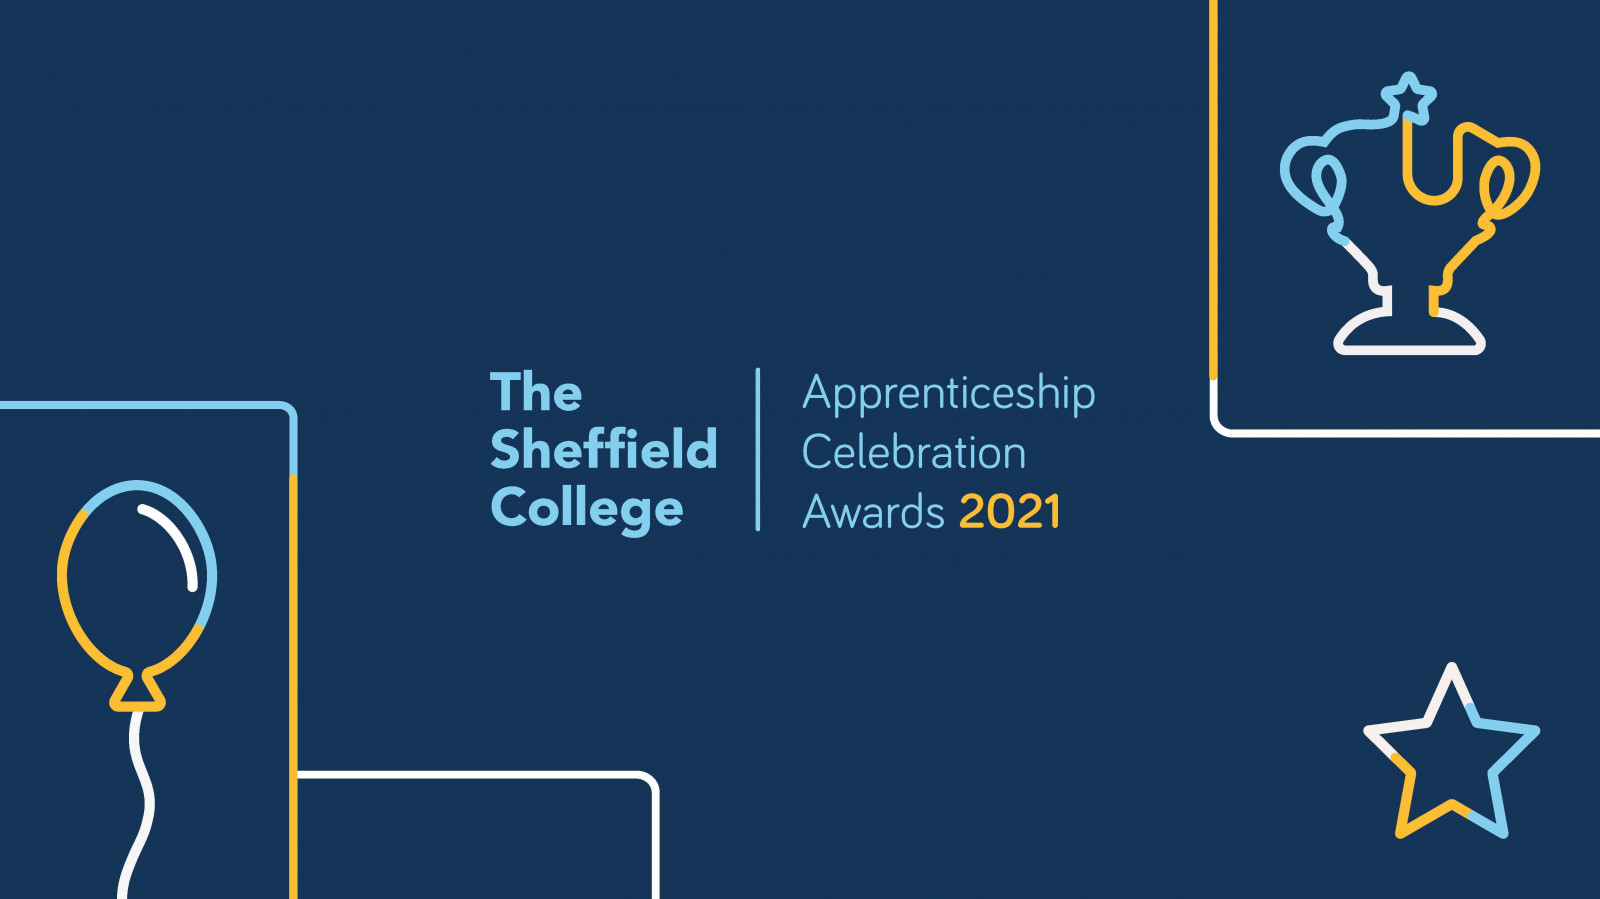 Apprentices' achievements celebrated by The Sheffield College image